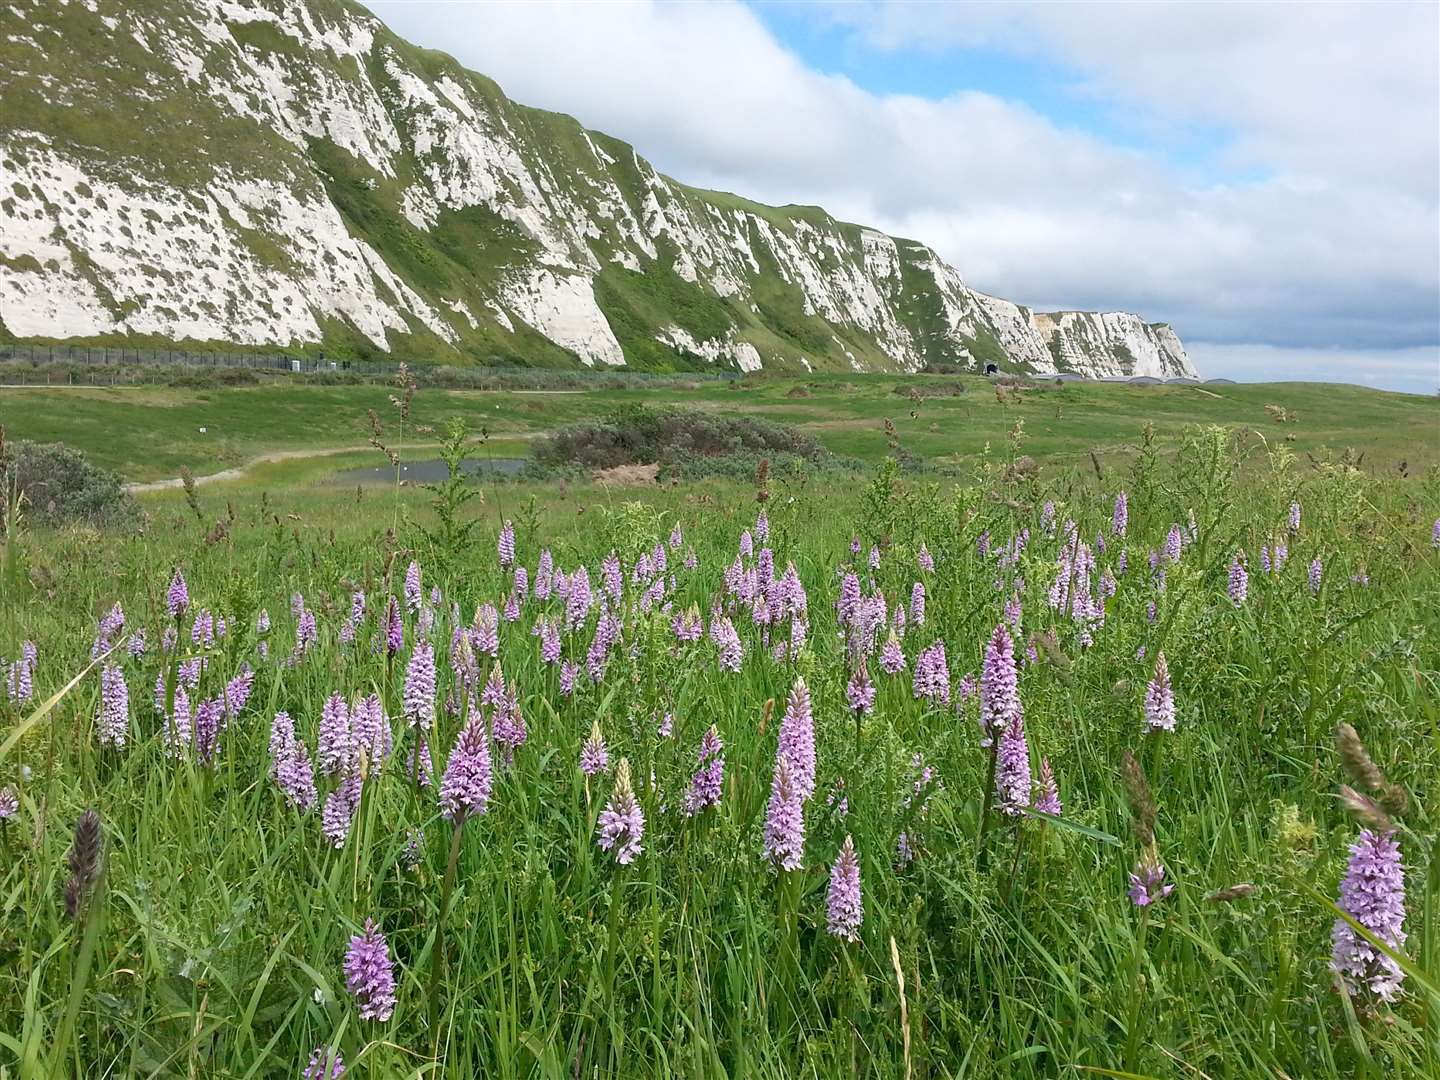 Samphire Hoe currently remains closed to visitors because of the coronavirus outbreak